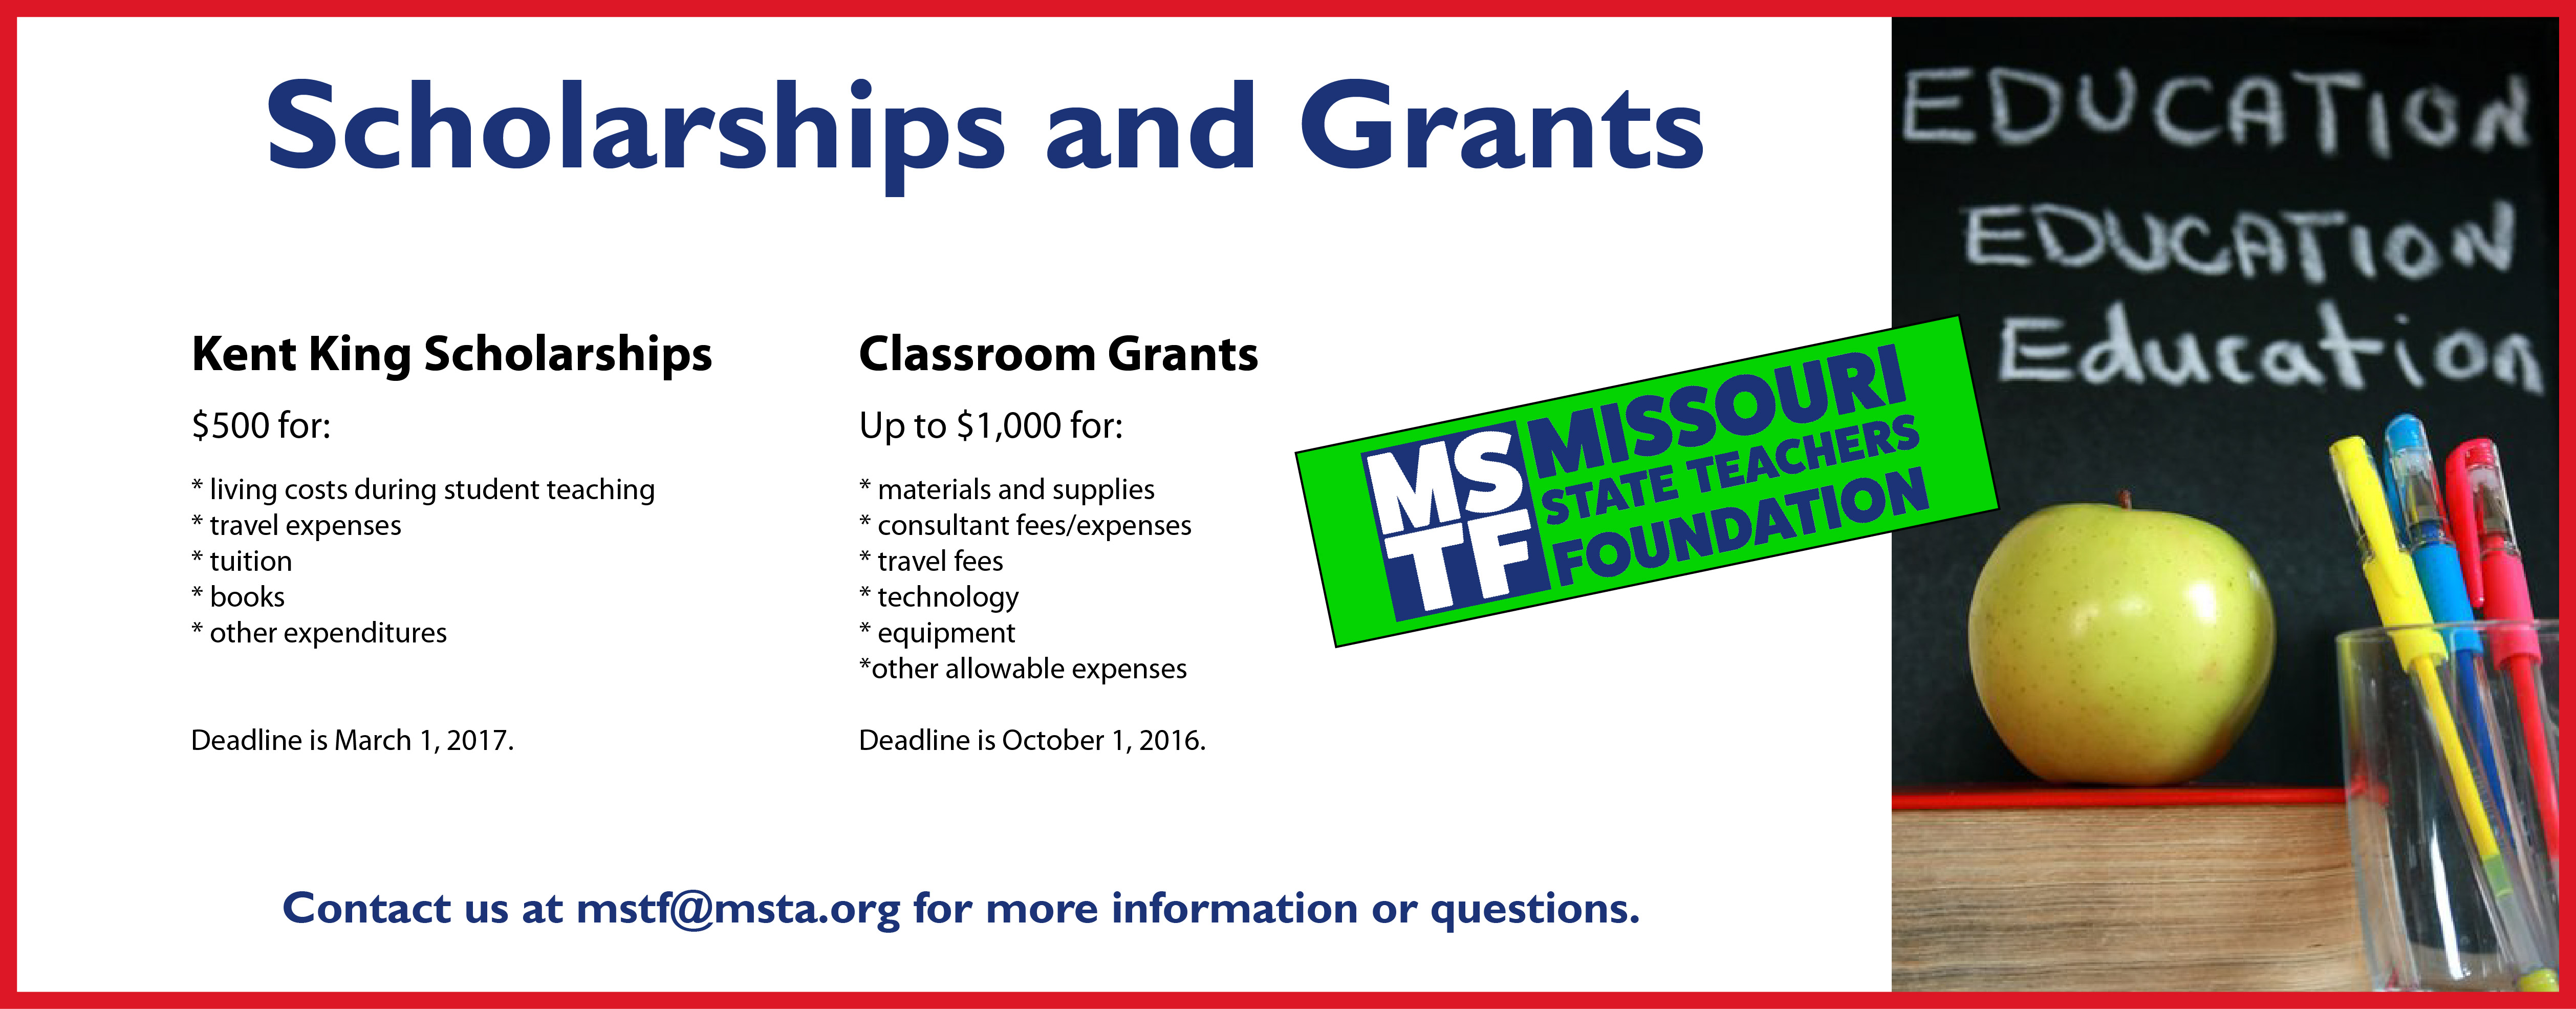 Grants and Scholarships Banner